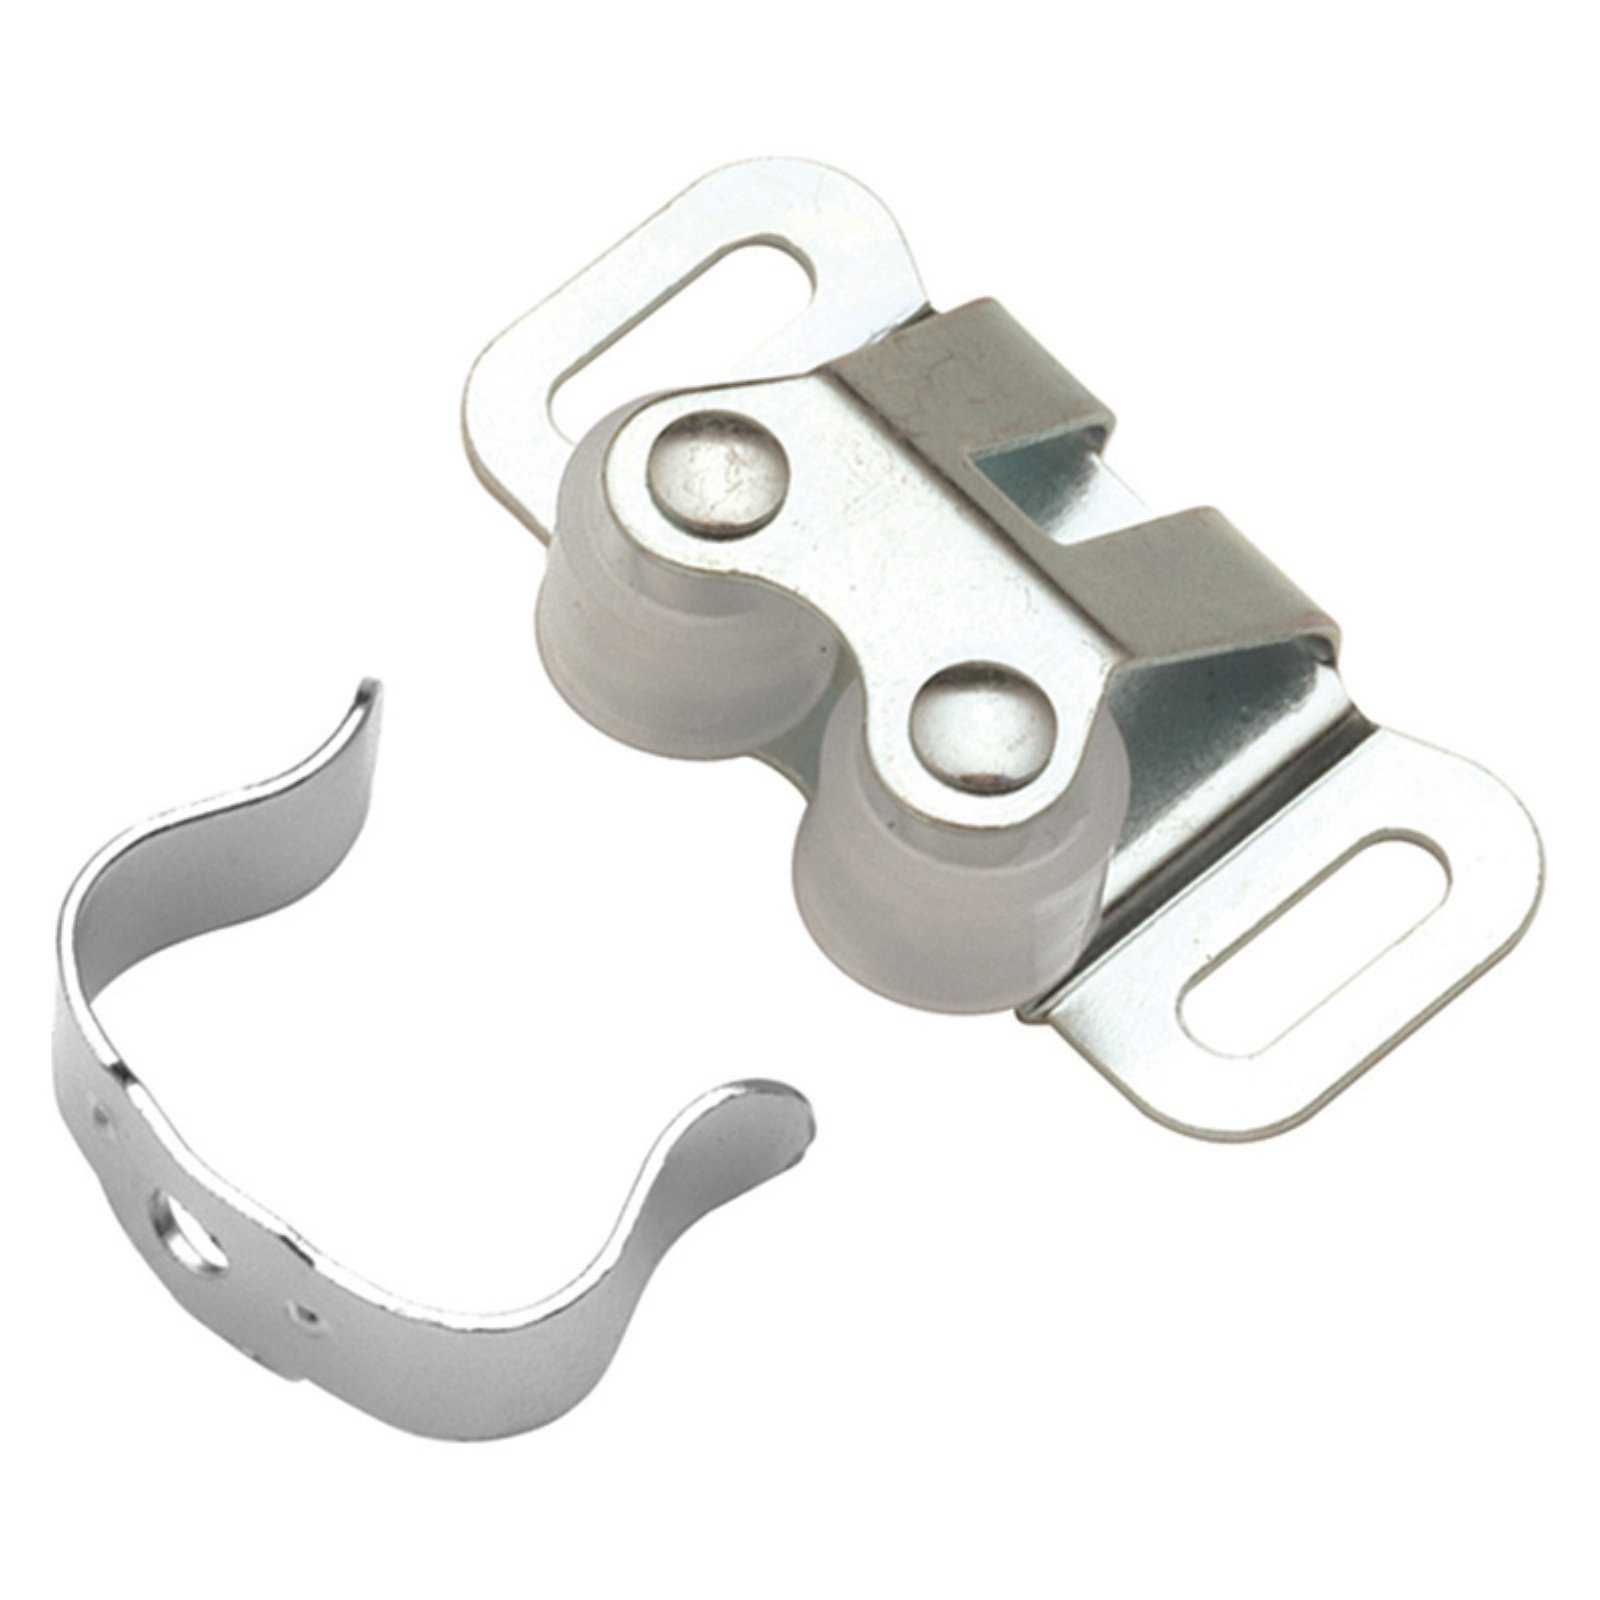 Hickory Hardware Cadmium Double Roller Catch - Set of 2